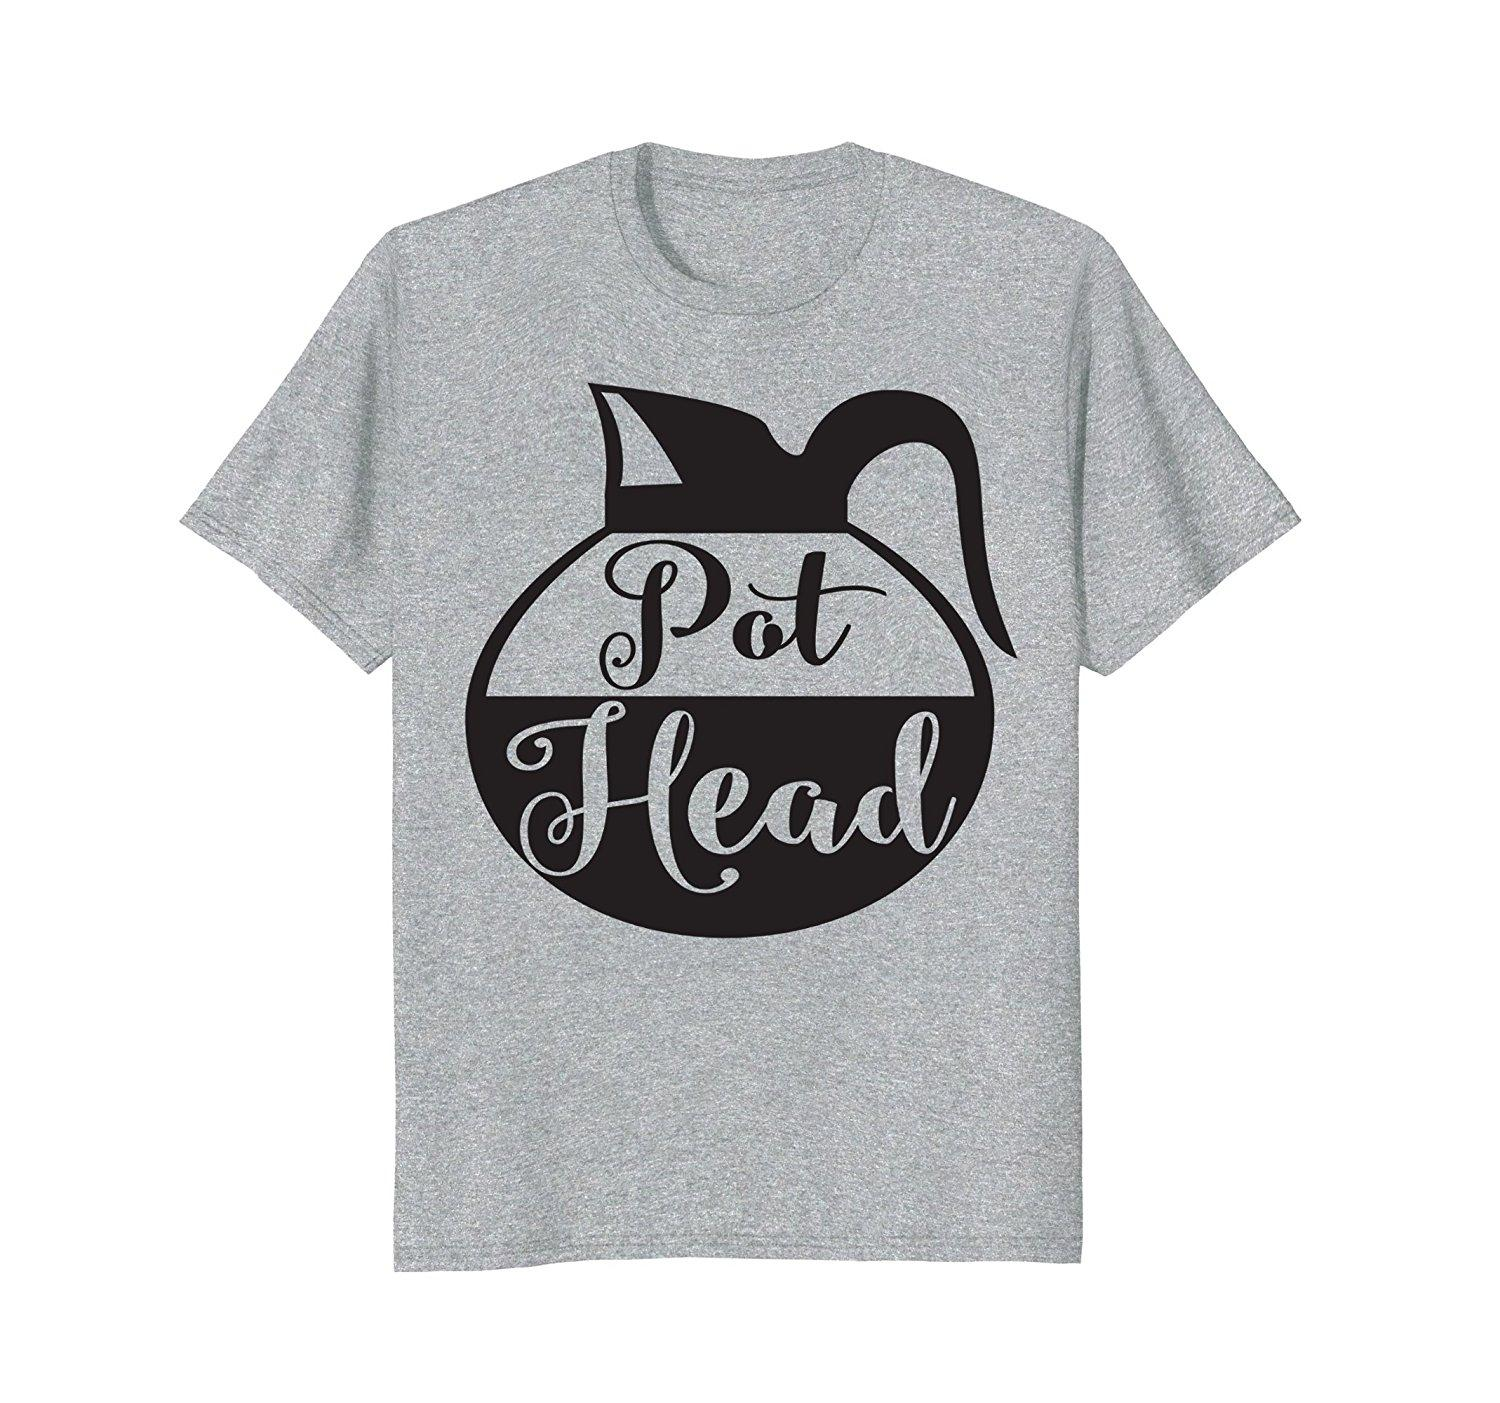 25aa7aa4d84 Pot Head T Shirt Funny Coffee Pot Shirt Brew Lover Addict Short Sleeve T  Shirt Fashion Casual Man Tees Mens Tops Personality Funny Rude T Shirts  Trendy Mens ...